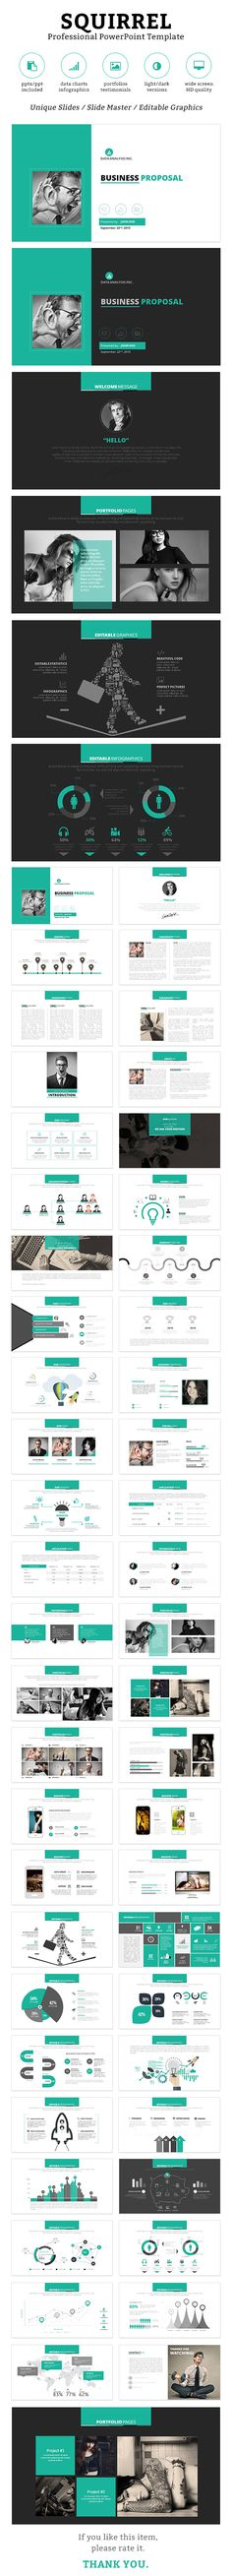 Squirrel PowerPoint Template #design #slides Download: http://graphicriver.net/item/squirrel-powerpoint-template/13058036?ref=ksioks